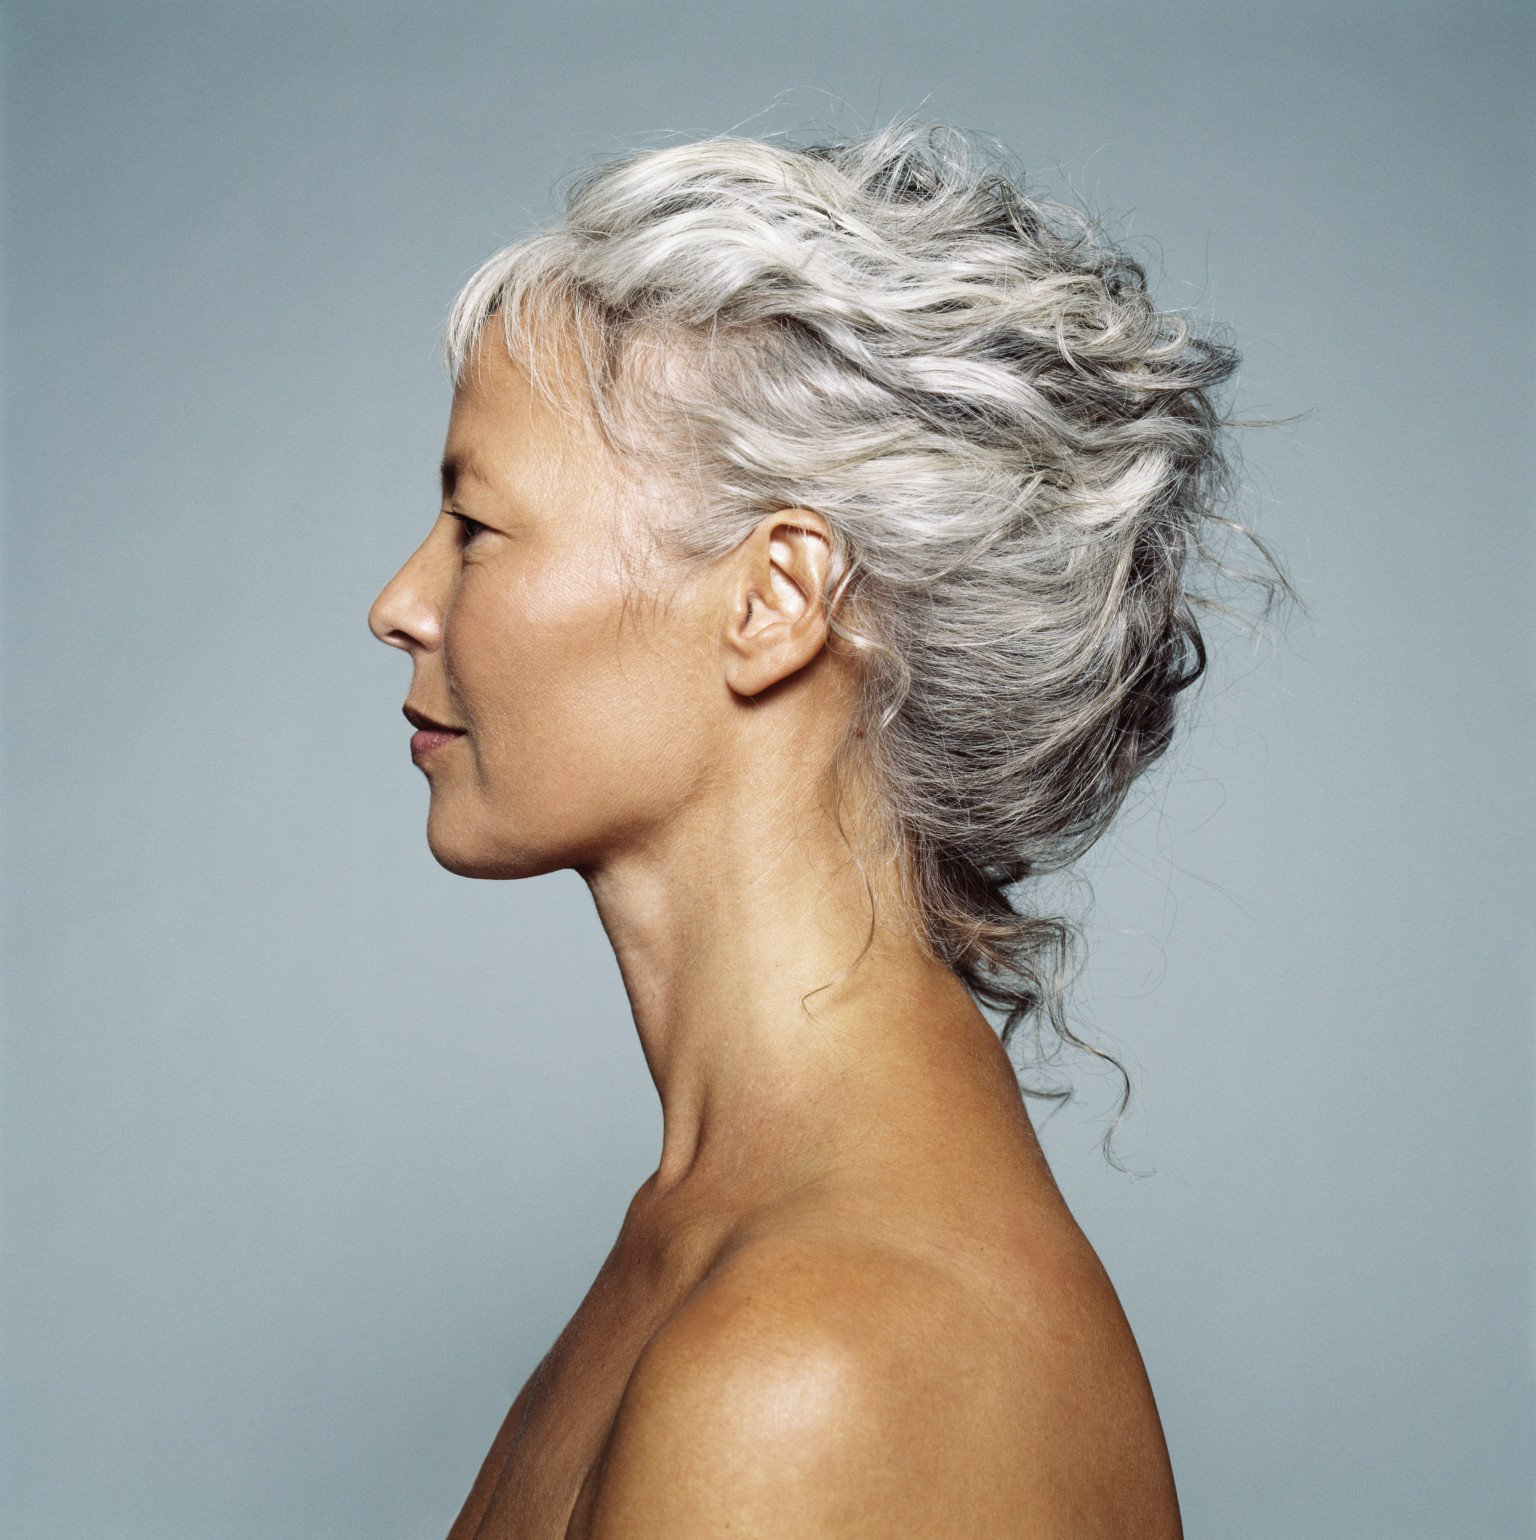 30 Stylish Gray Hair Styles For Short And Long Hair Intended For Short Haircuts For Coarse Gray Hair (View 3 of 25)